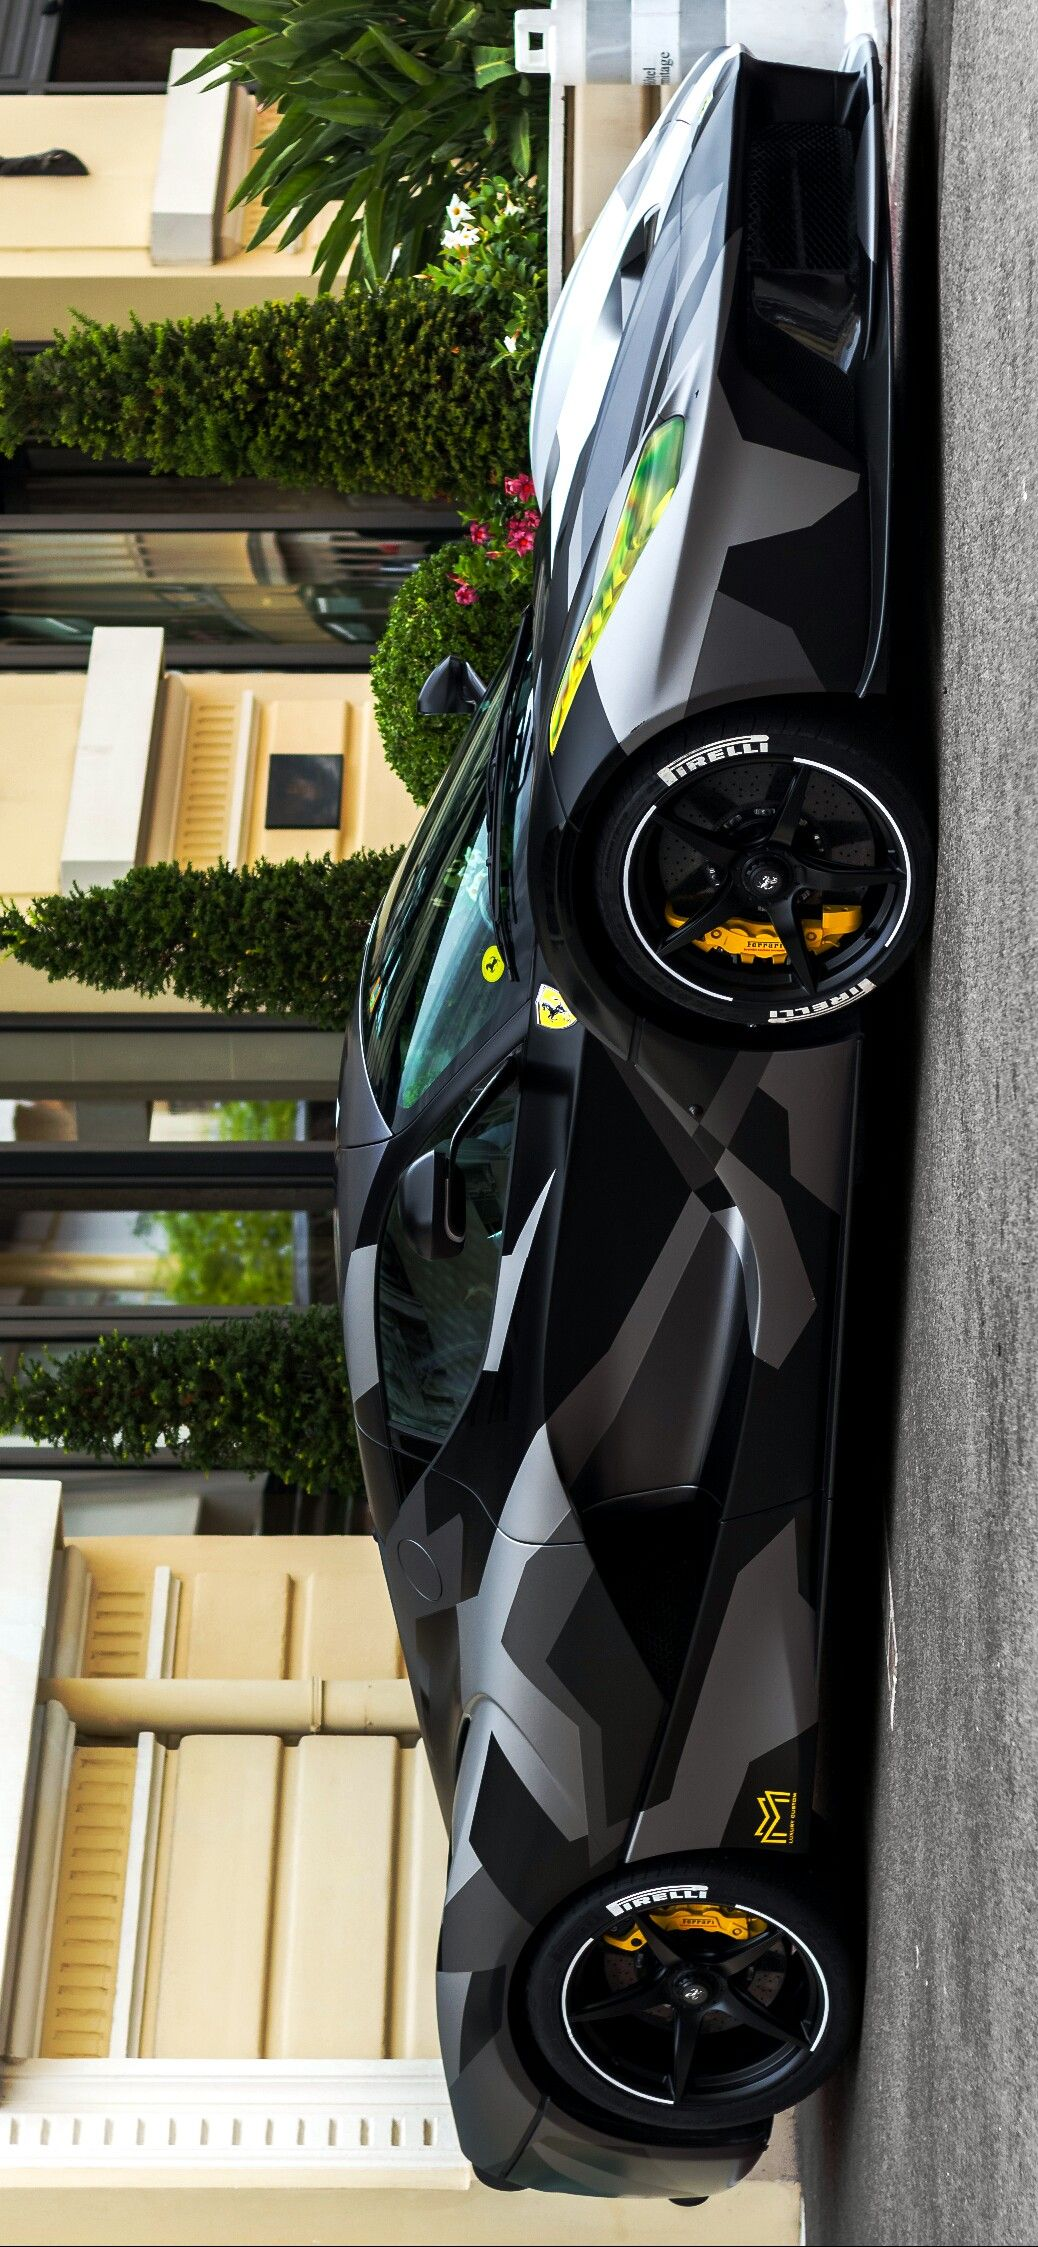 LaFerrari wrapped in Stealth Camouflage, image provided ...